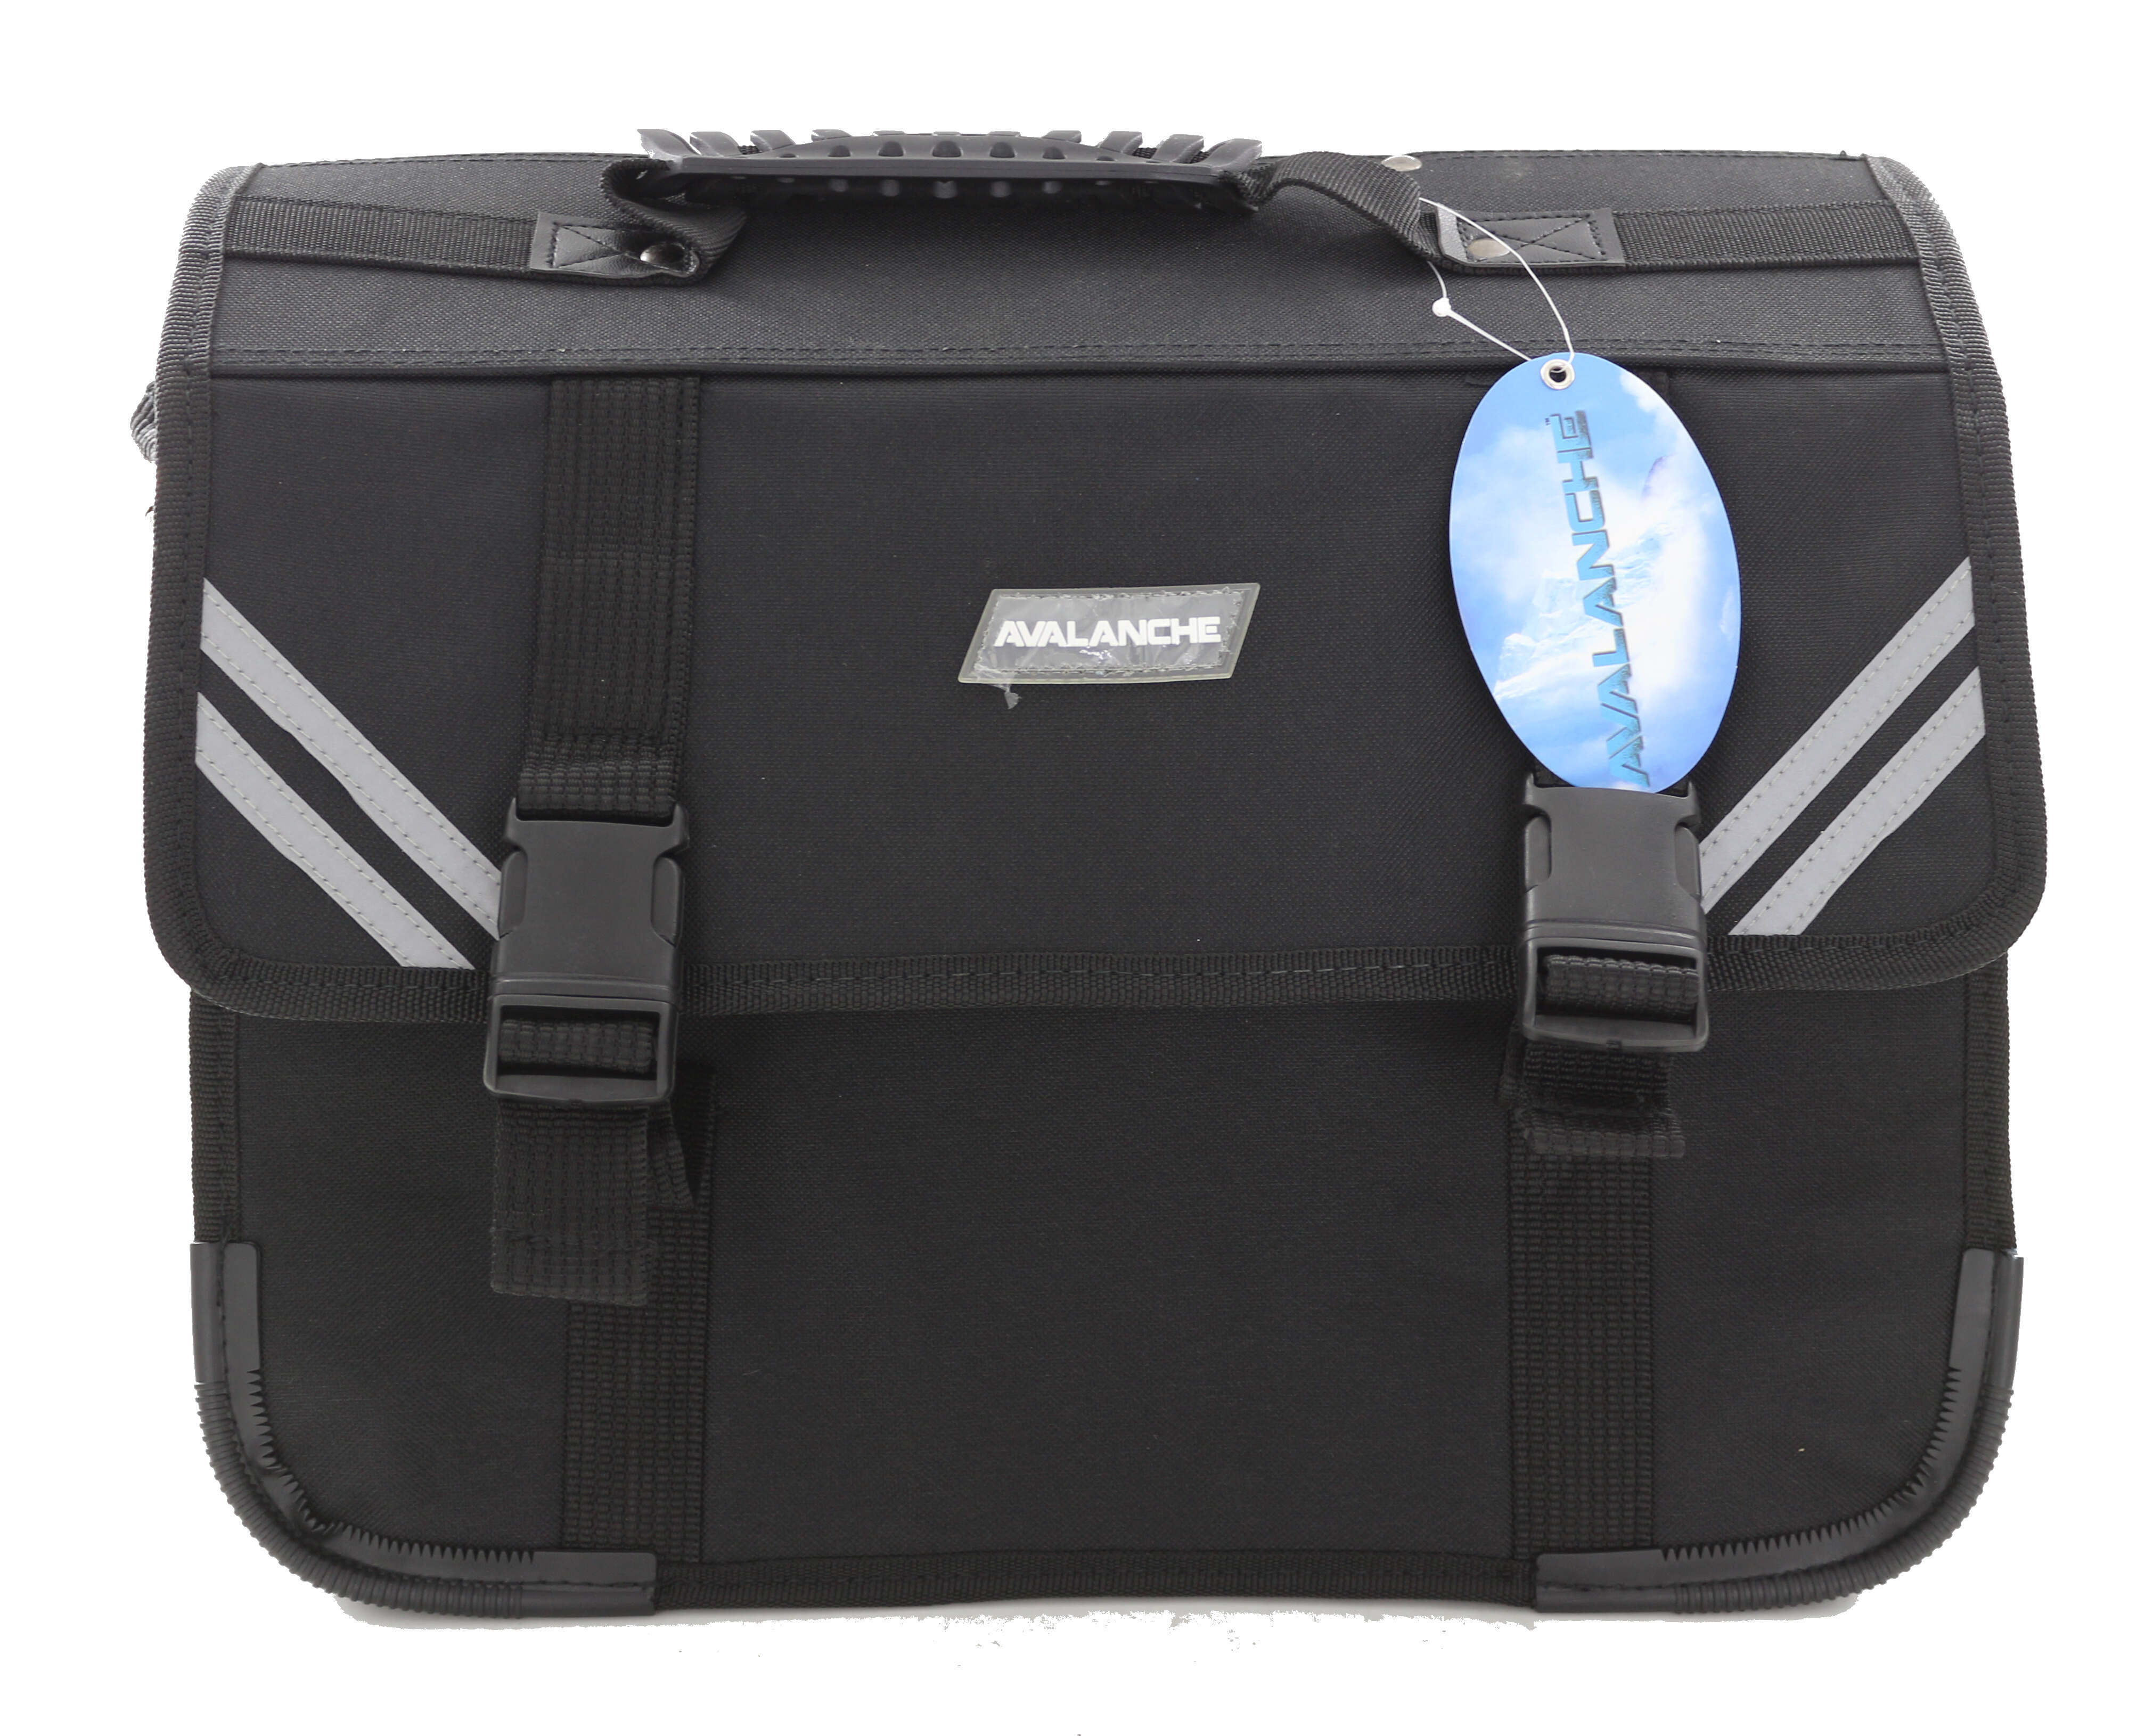 Avalanche Standard Student Suitcase - 7 Compartment - Black